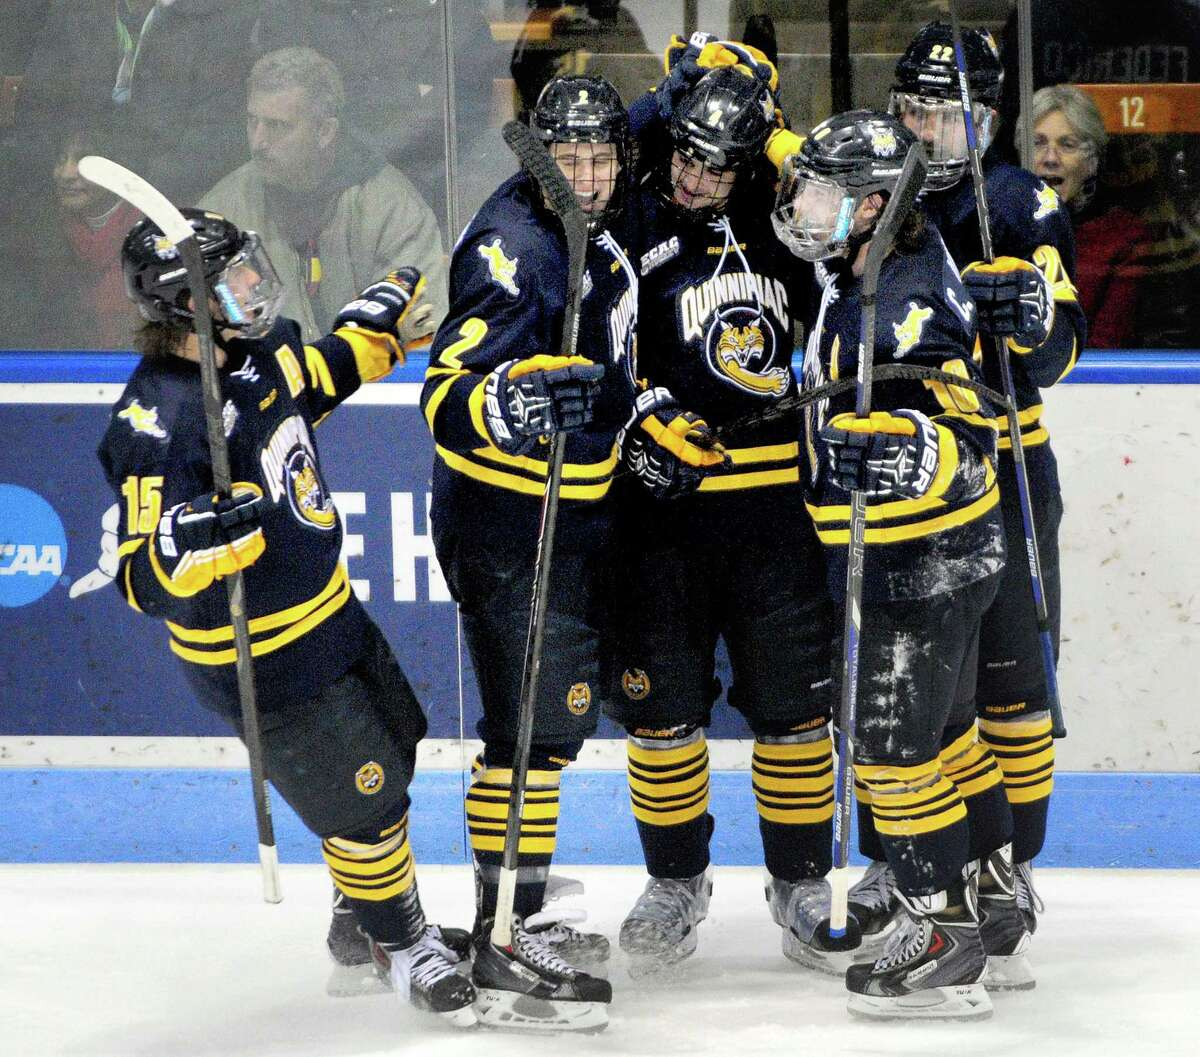 Quinnipiac players celebrate after taking a 3-0 lead over Yale in Friday's game. The Bobcats won 4-0.